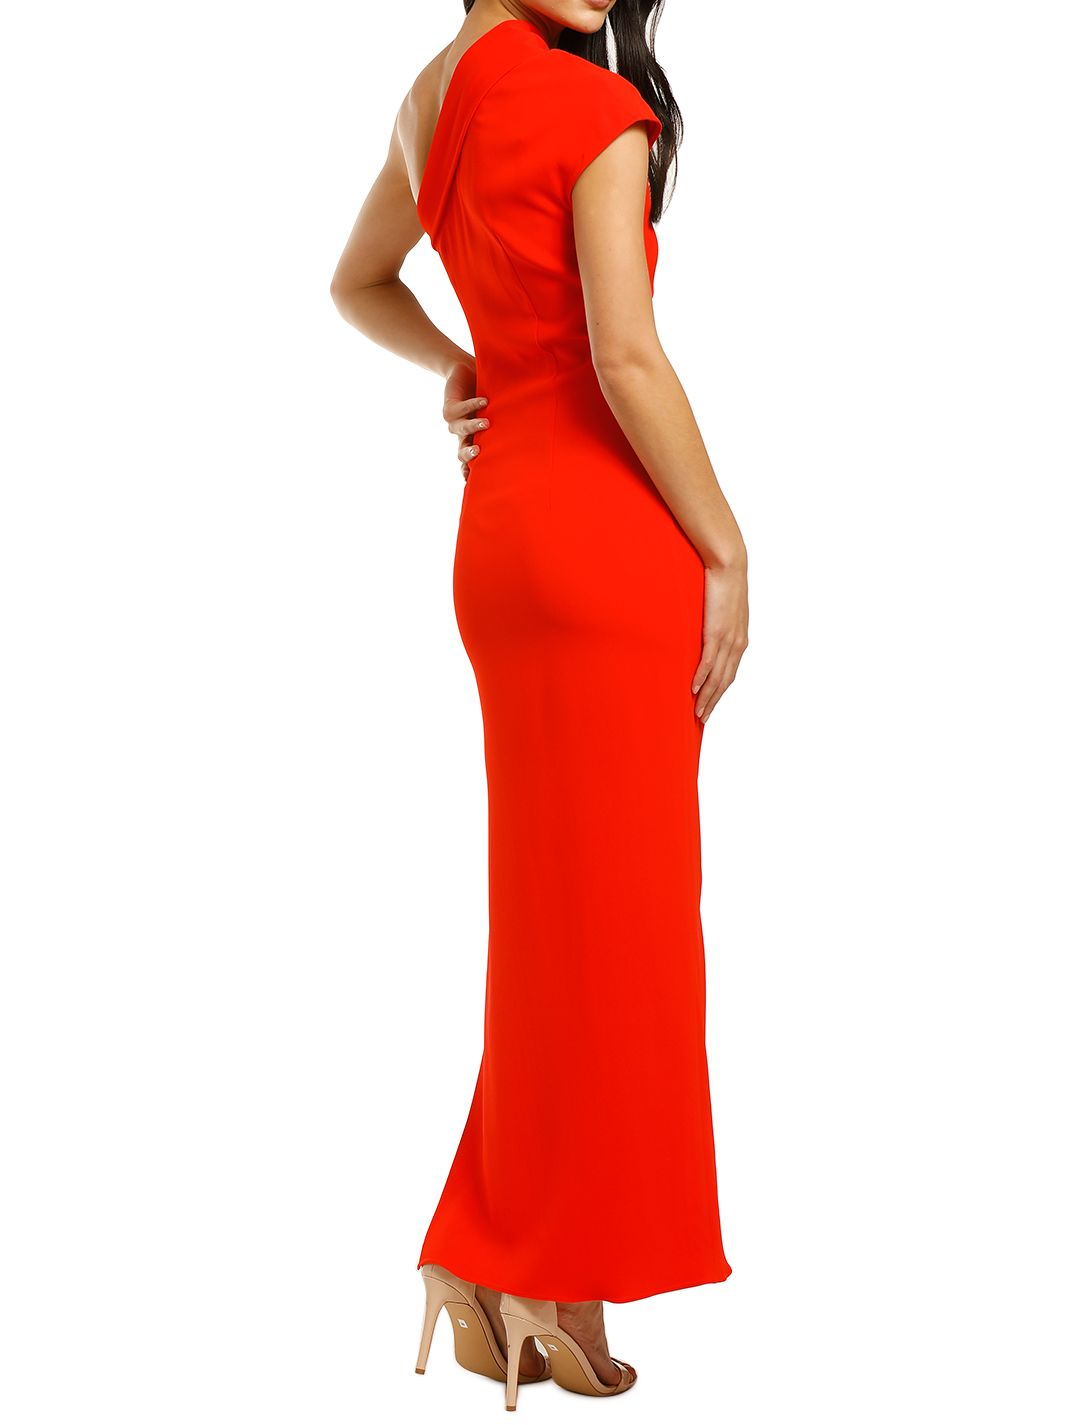 Ginger-and-Smart-Curator-Gown-Kinetic-Red-Back